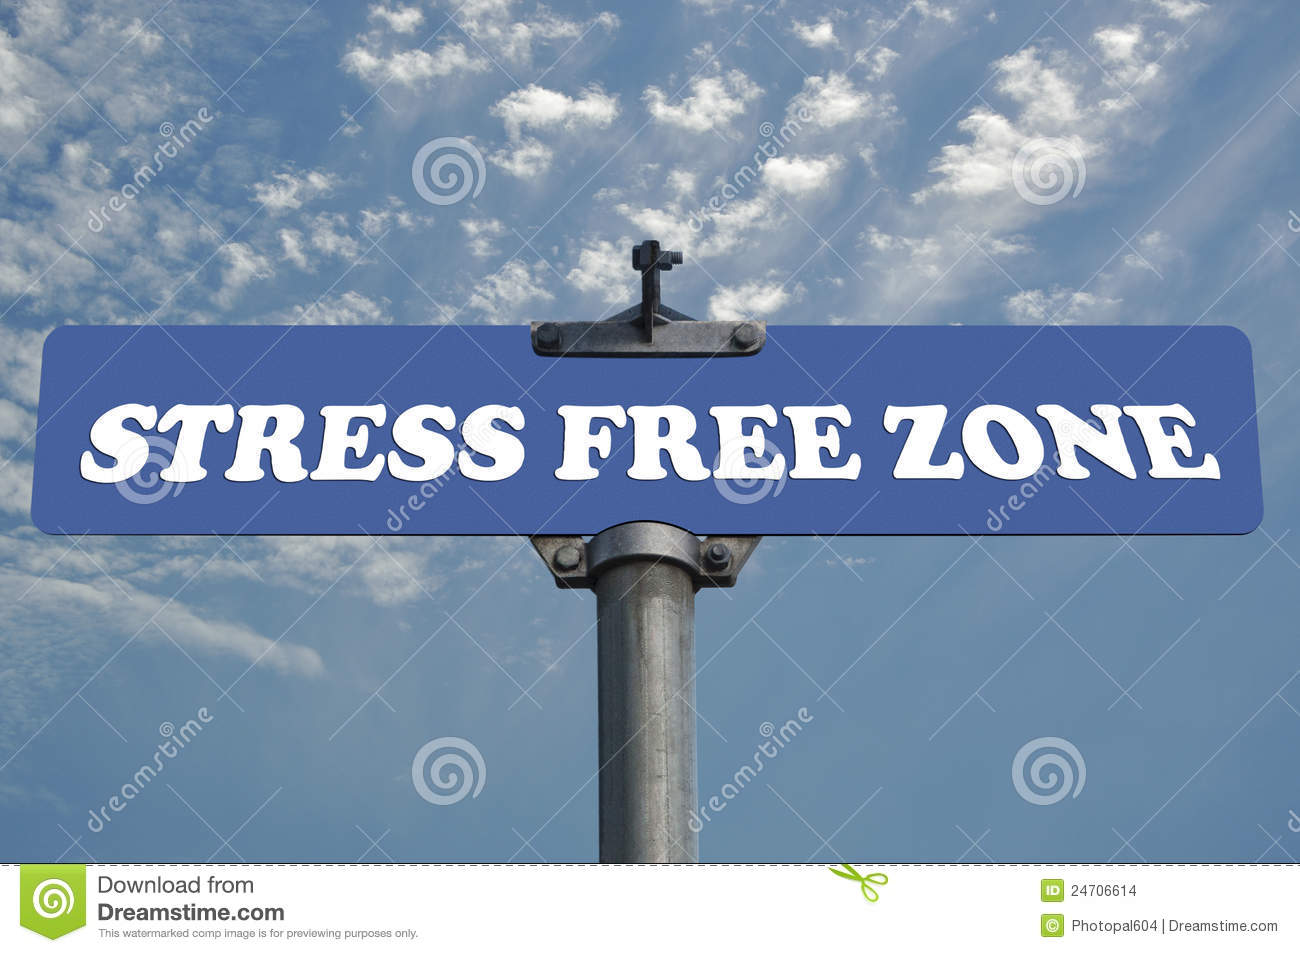 Stress free zone road sign